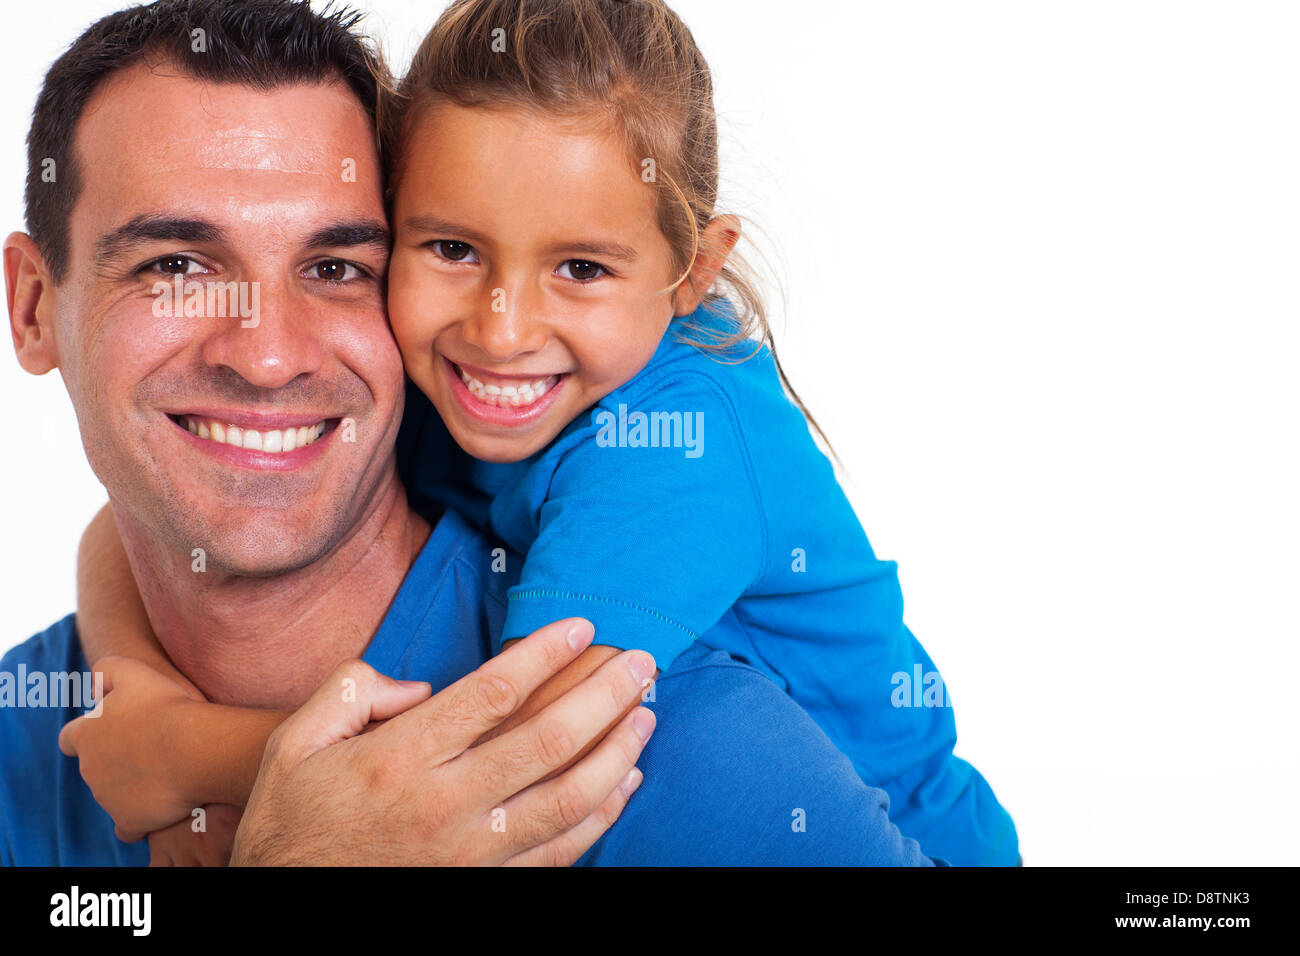 joyful father giving piggyback ride to his daughter against a white background - Stock Image